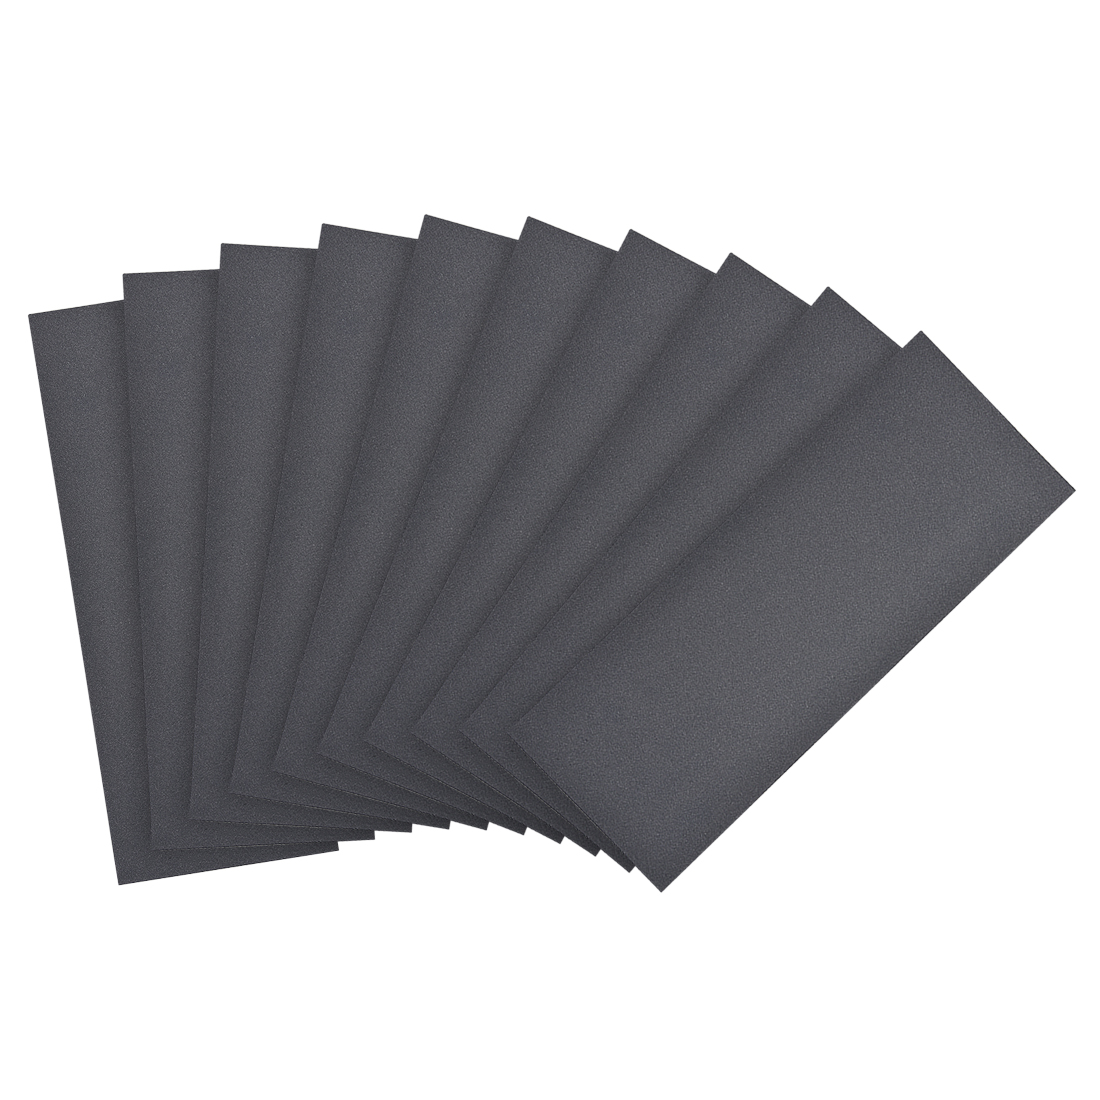 Waterproof Sandpaper, Wet Dry Sand Paper Grit of 400, 9 x 3.7inch 10pcs